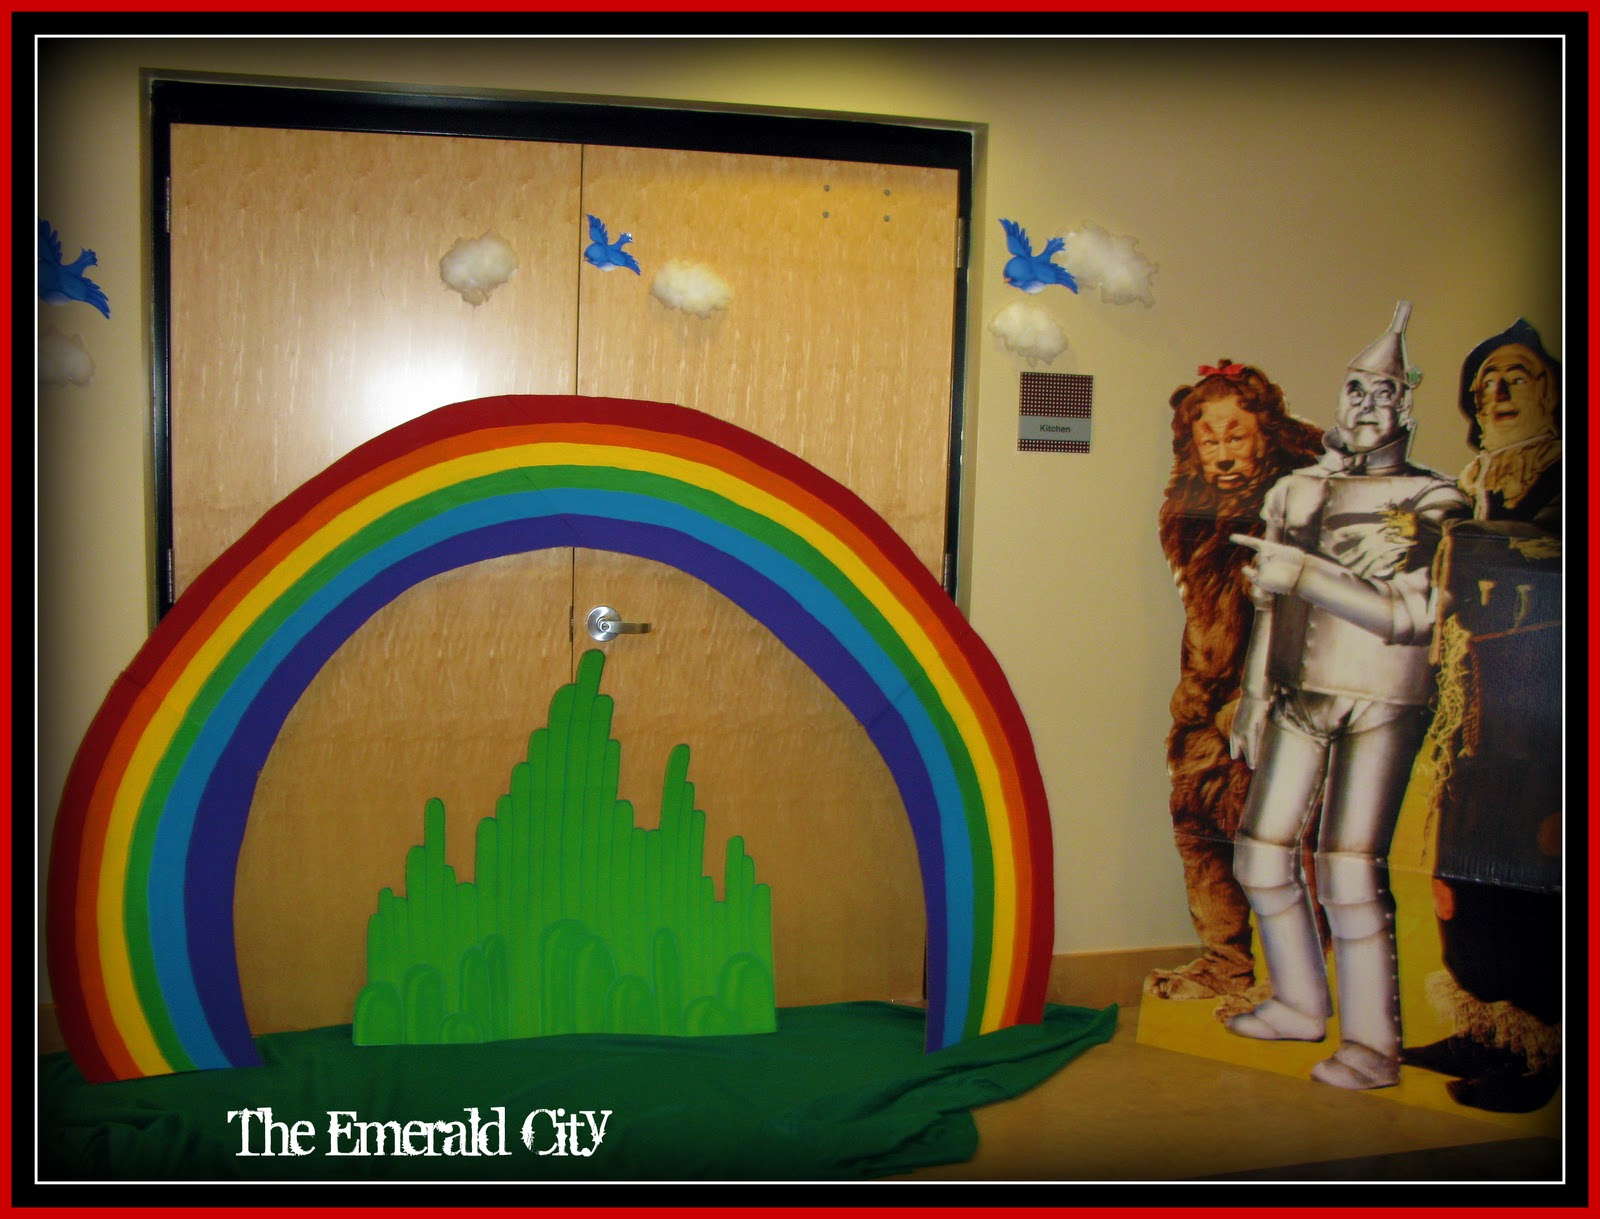 Wizard Of Oz Party Decorations Festive Enchantments Keiras Wizard Of Oz Party